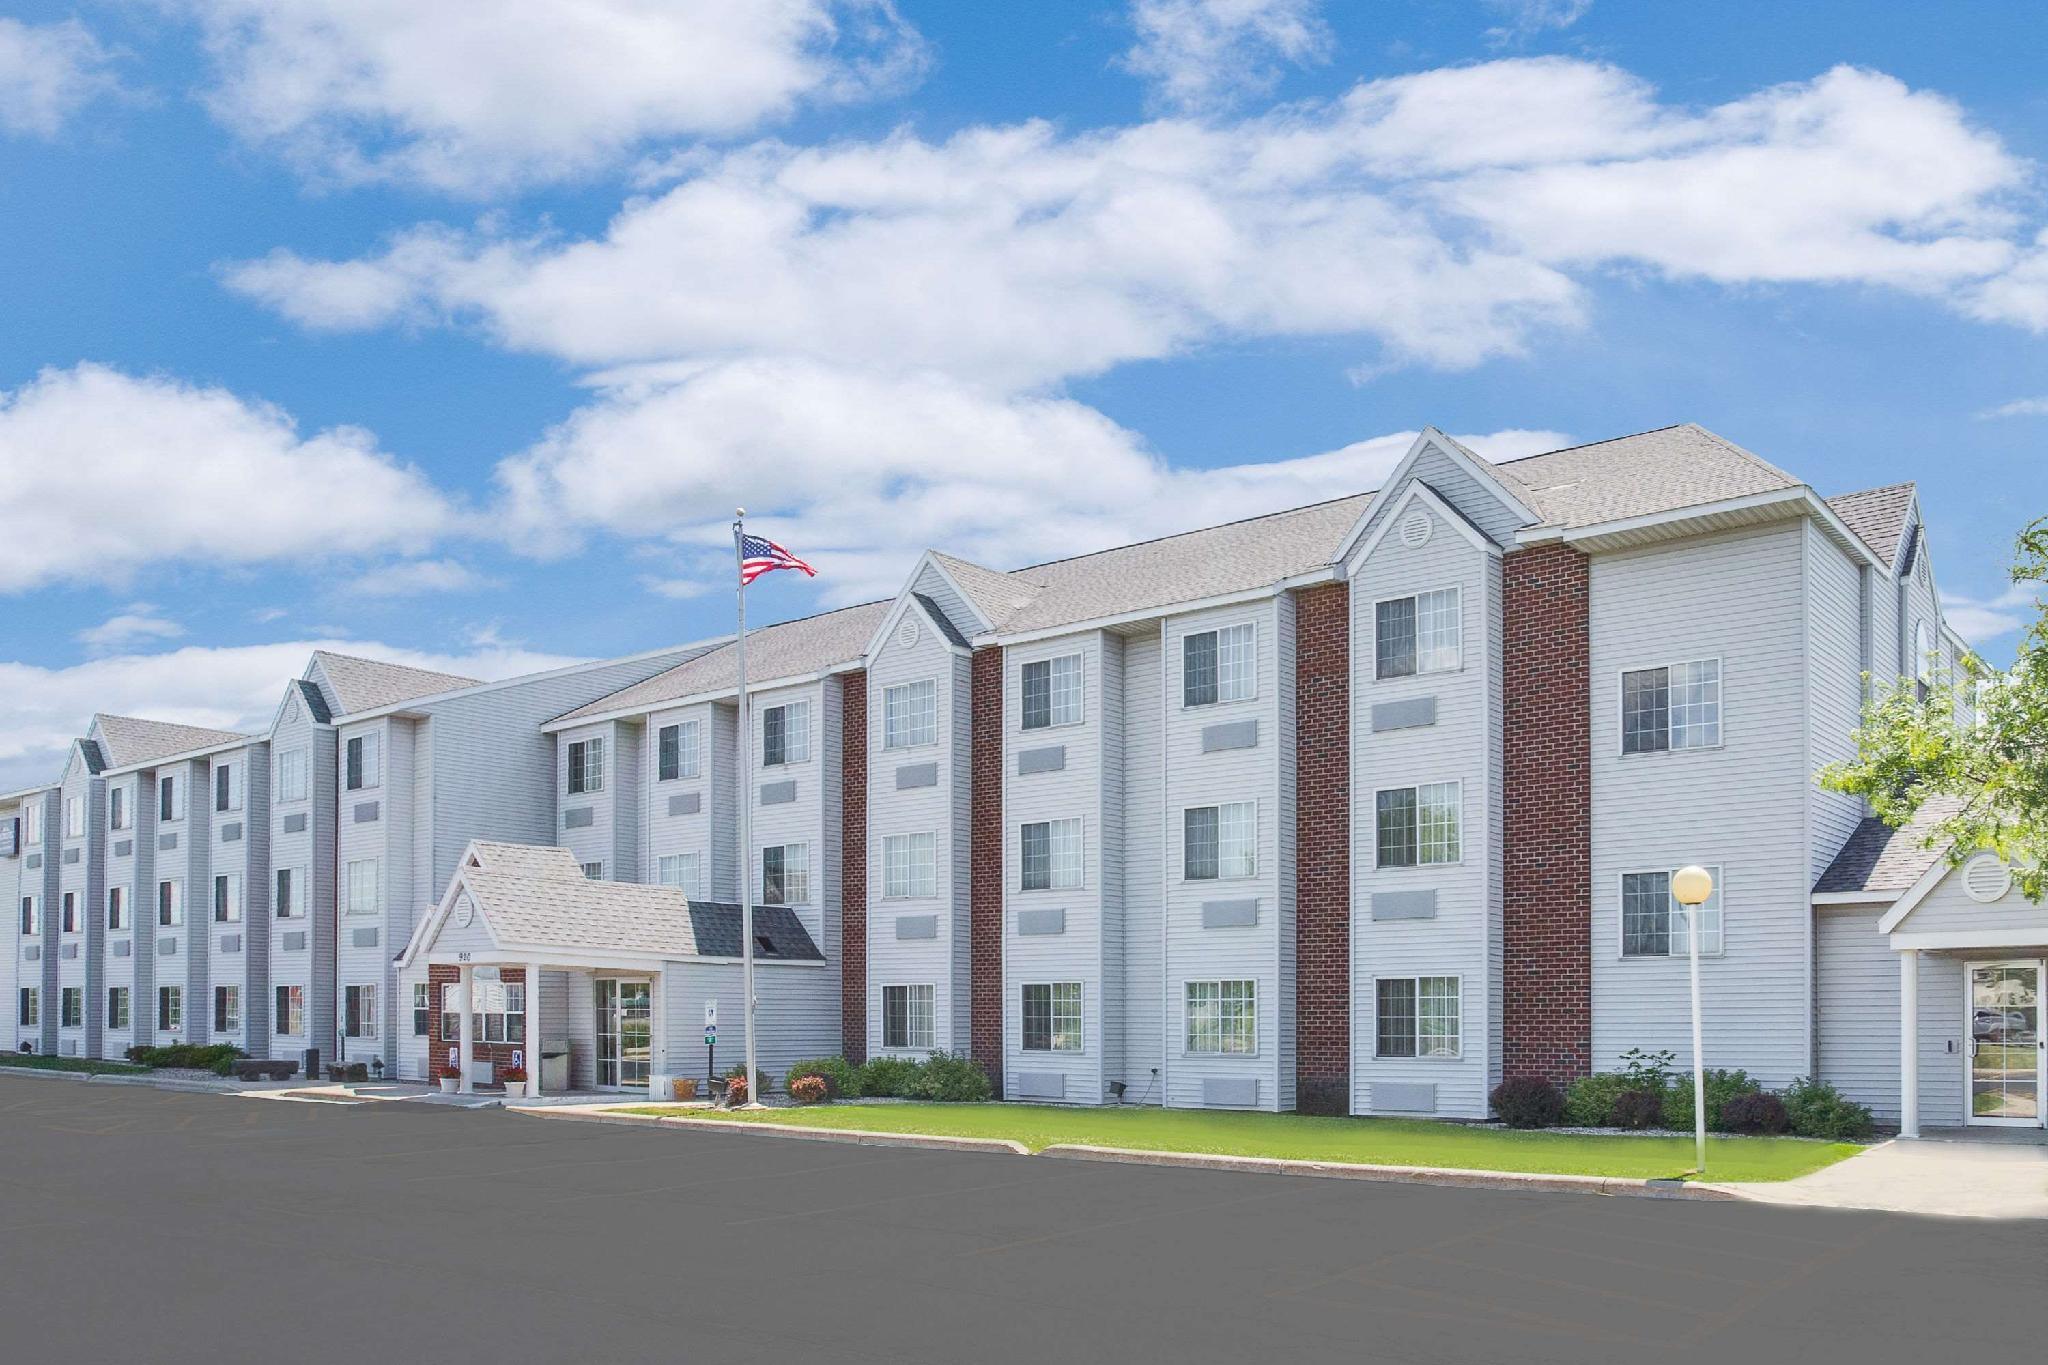 Microtel Inn And Suites By Wyndham Fond Du Lac